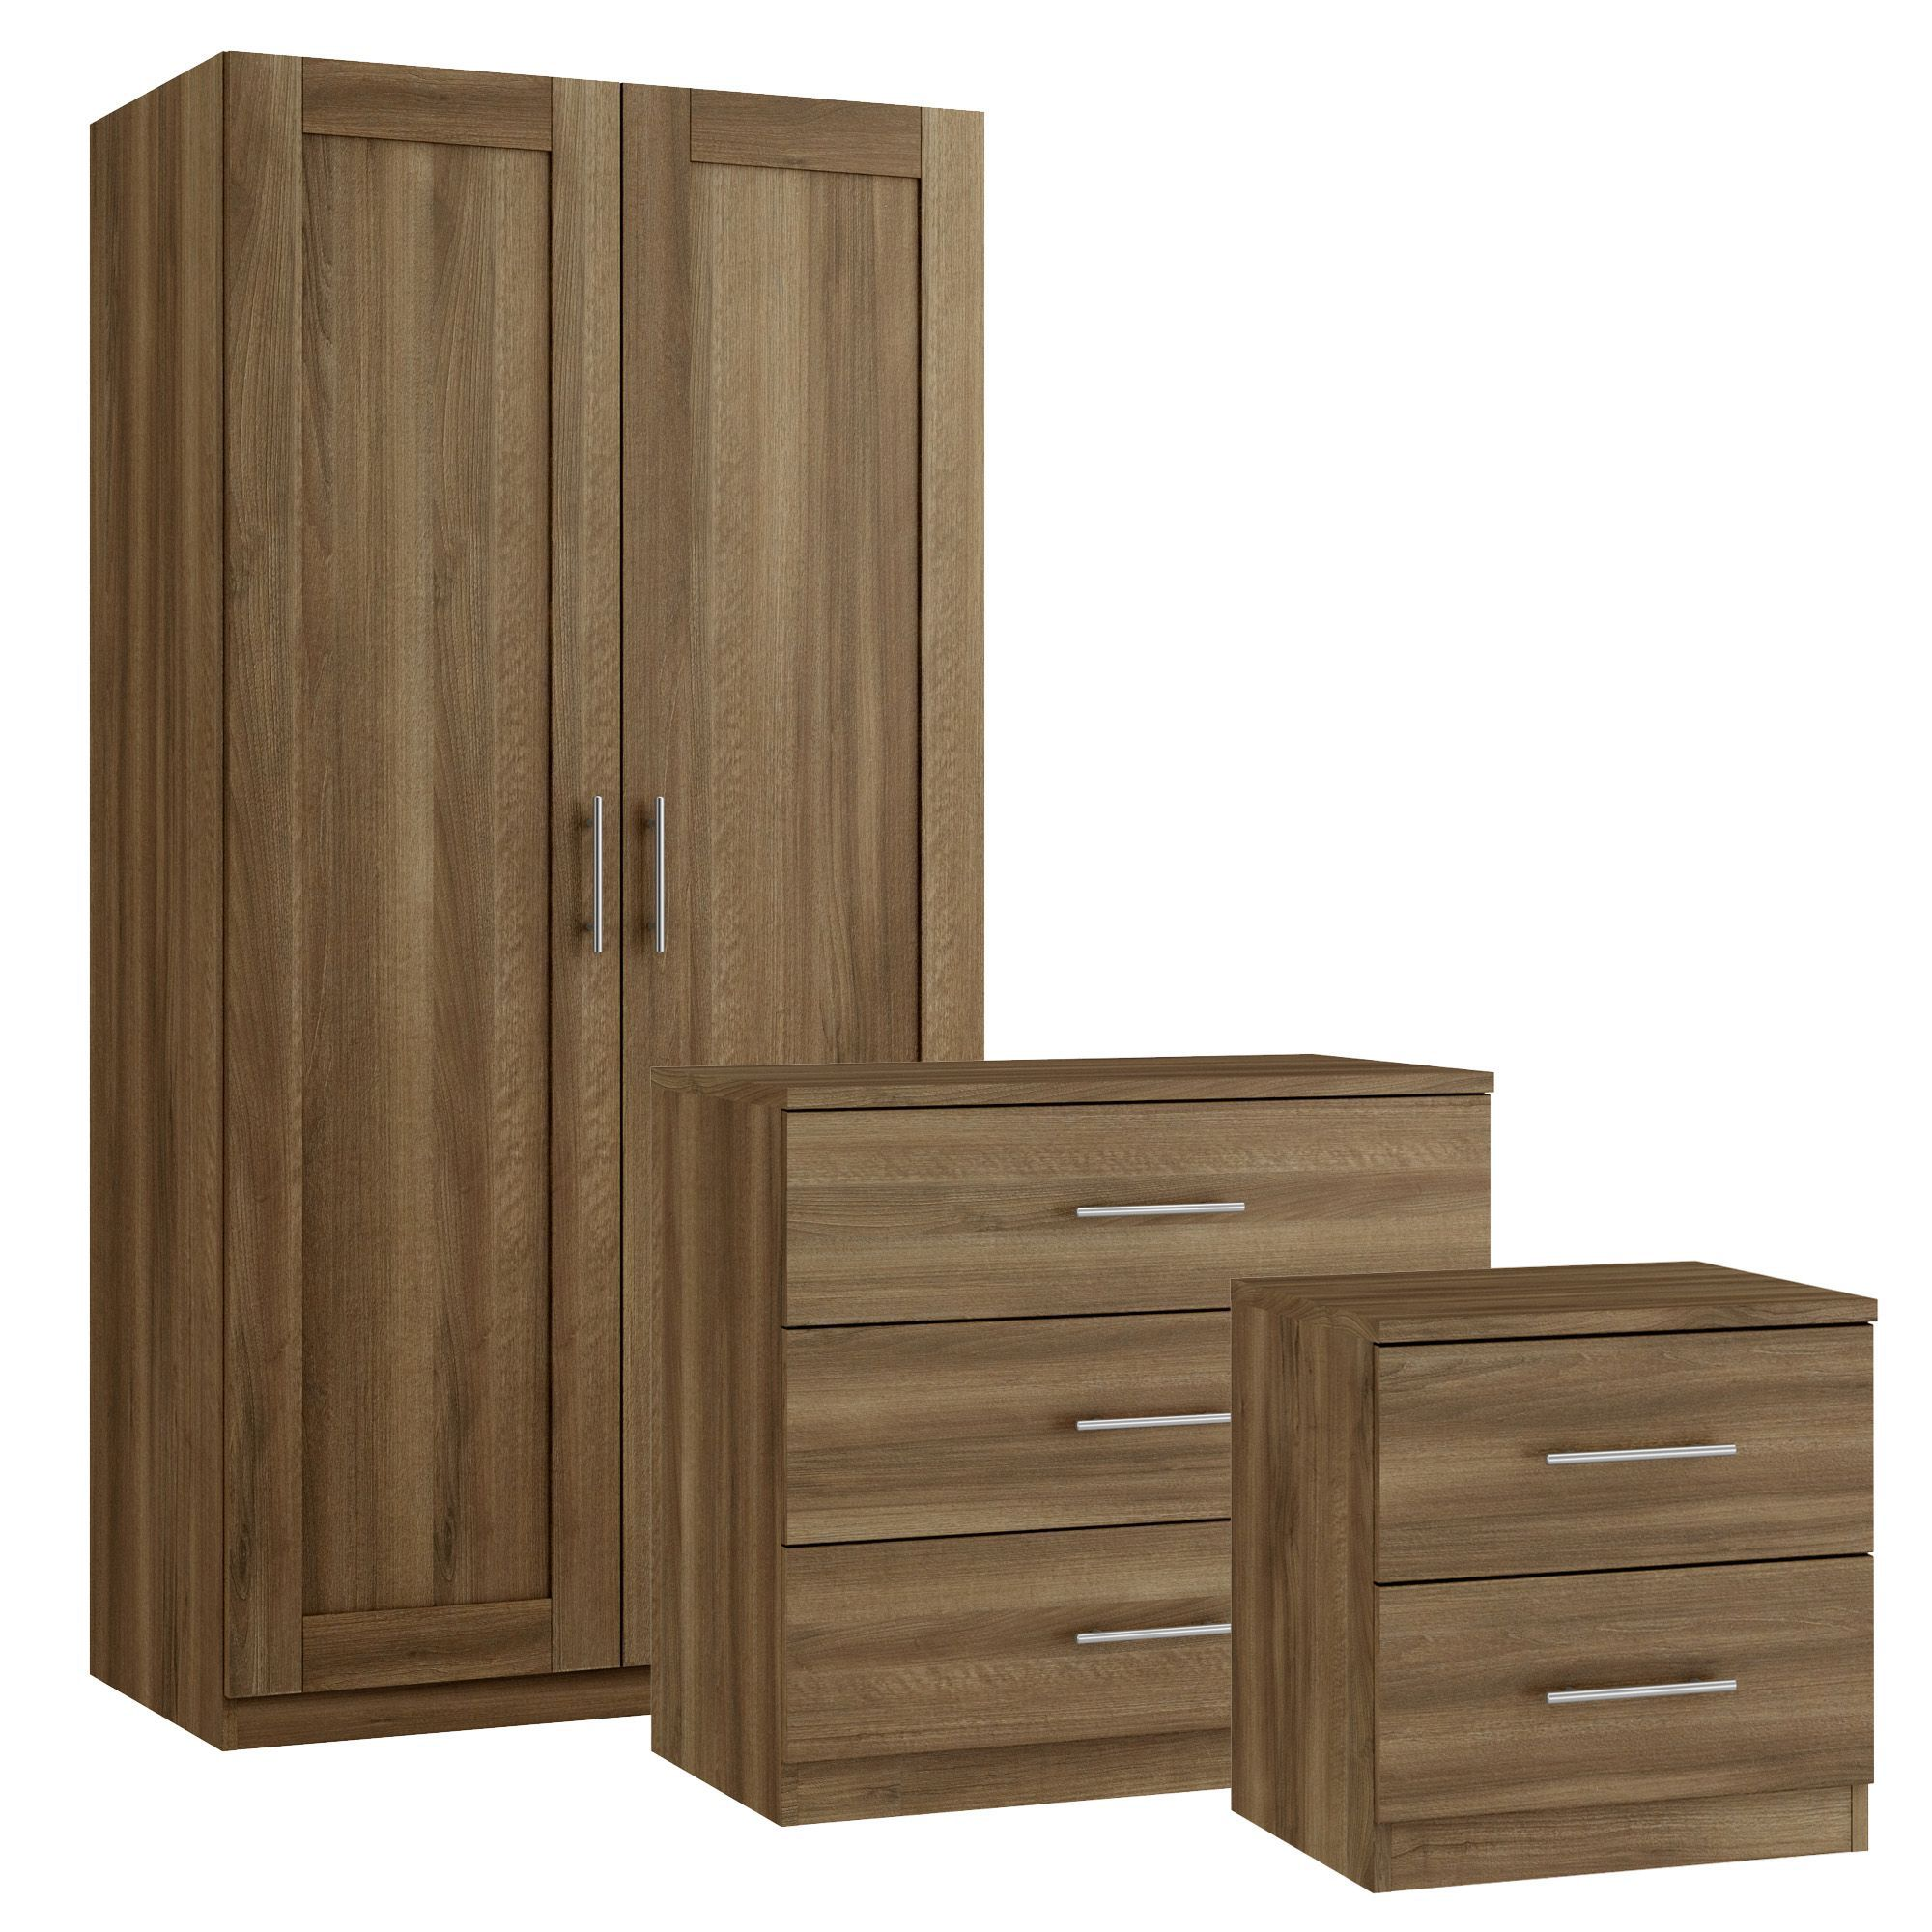 3 piece bedroom furniture